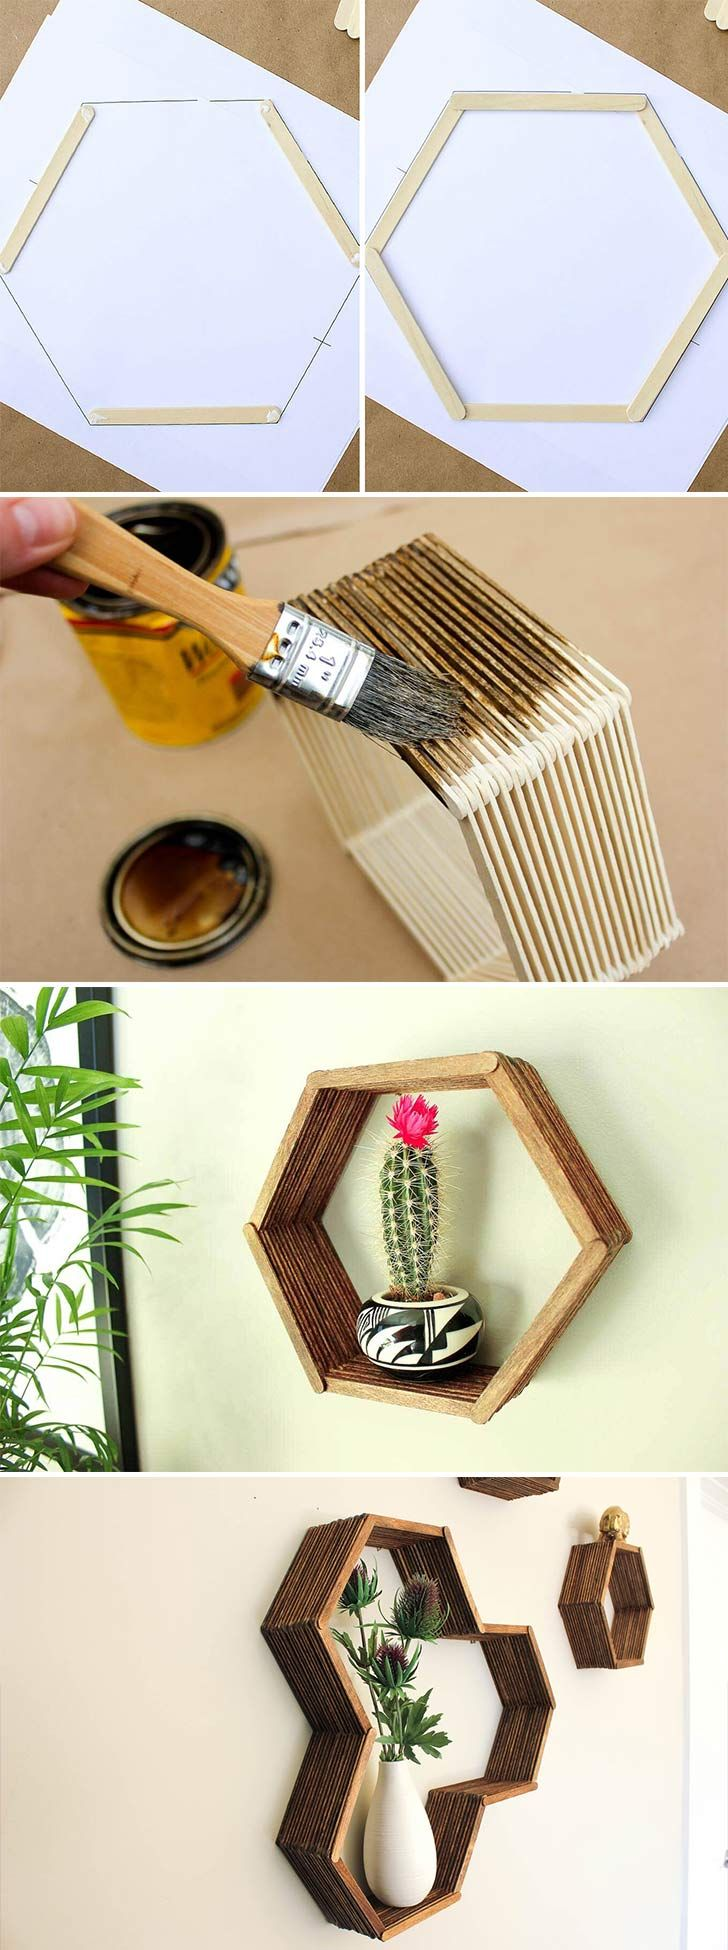 40 amazing diy home decor ideas that wont look diyed - Homemade Home Decor